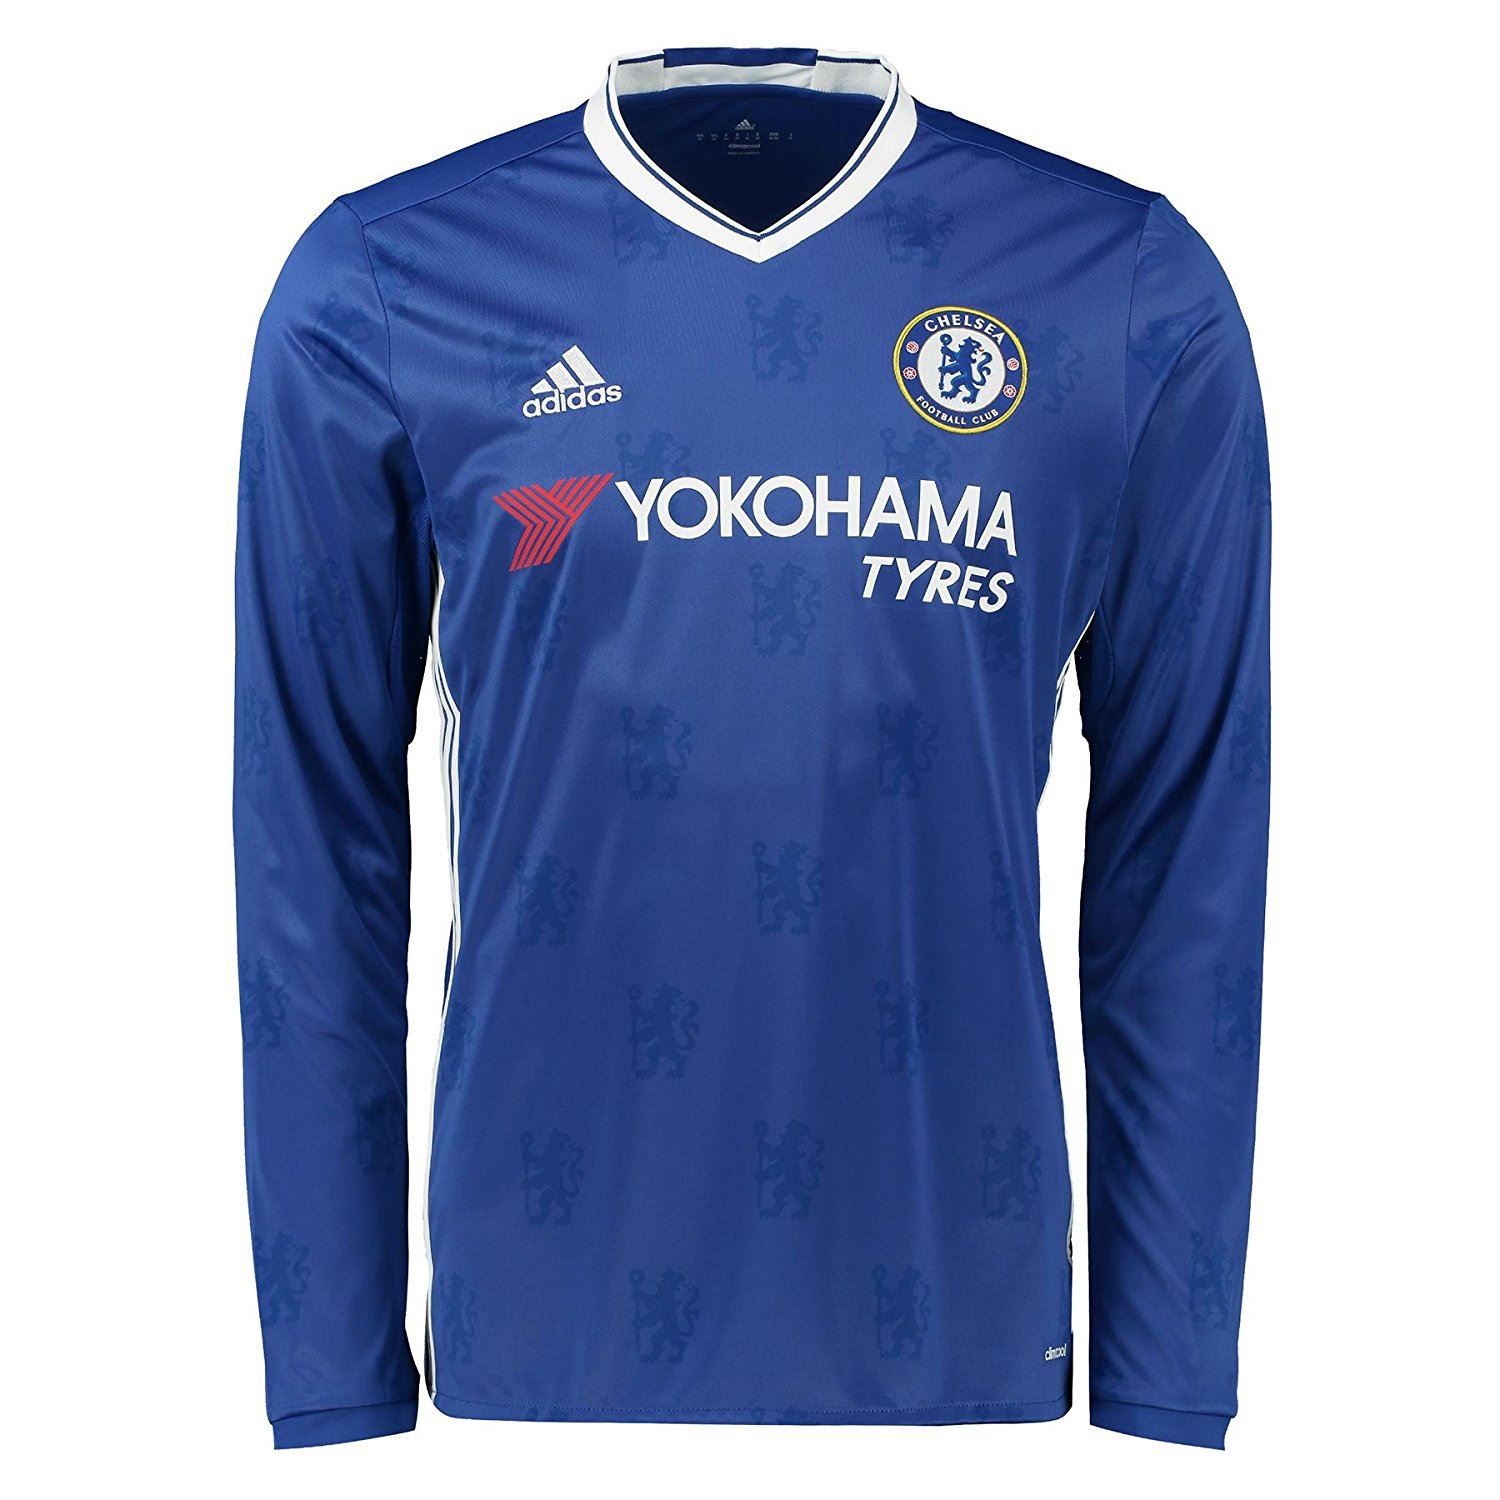 super popular b8c8d 01e29 Details about adidas Chelsea 2016 2017 Home Jersey Long Sleeve Juniors Blue  Football Soccer